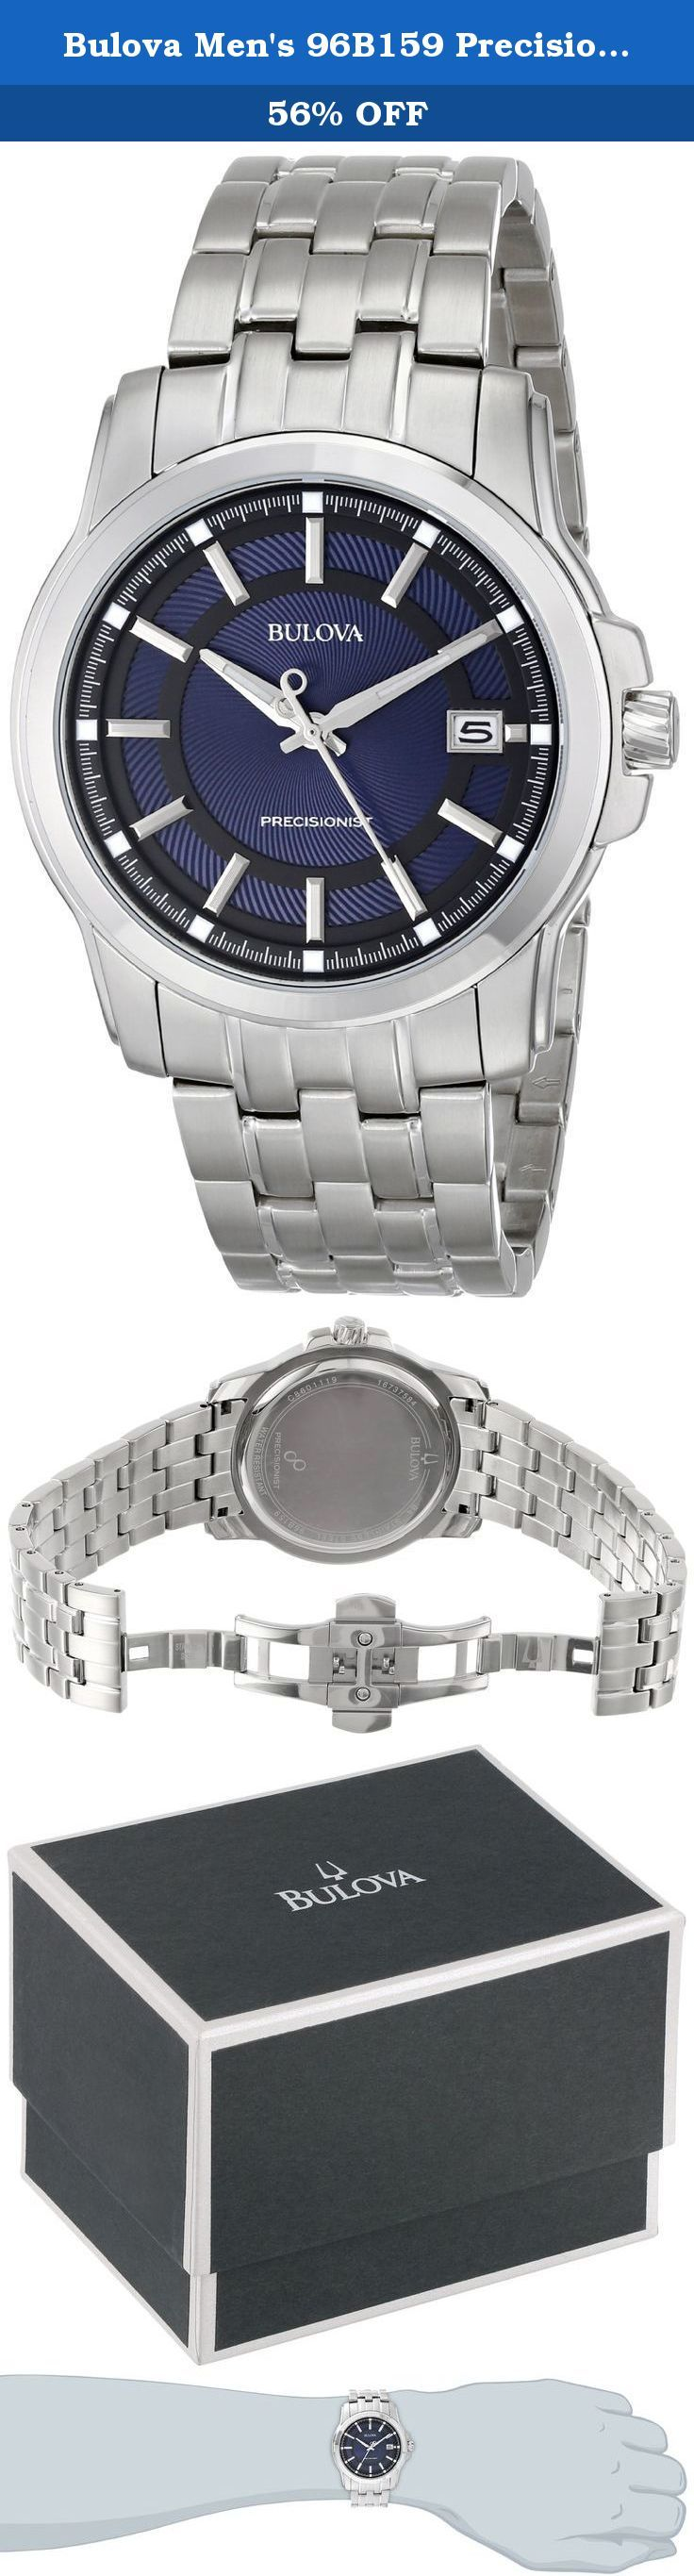 Bulova Men's 96B159 Precisionist Round Watch. From the Precisionist Collection. Featuring Bulova's proprietary Precisionist quartz accuracy, in stainless steel with multiple-layer swirl-pattern blue and black dial, silver continuously sweeping second hand, luminous hour and minute hands, faceted stick markers with luminous squares, calendar, double-press deployant closure and water resistance to 30 meters. Precisionist Technology At the heart of the watch is the Bulova Precisionist-class...